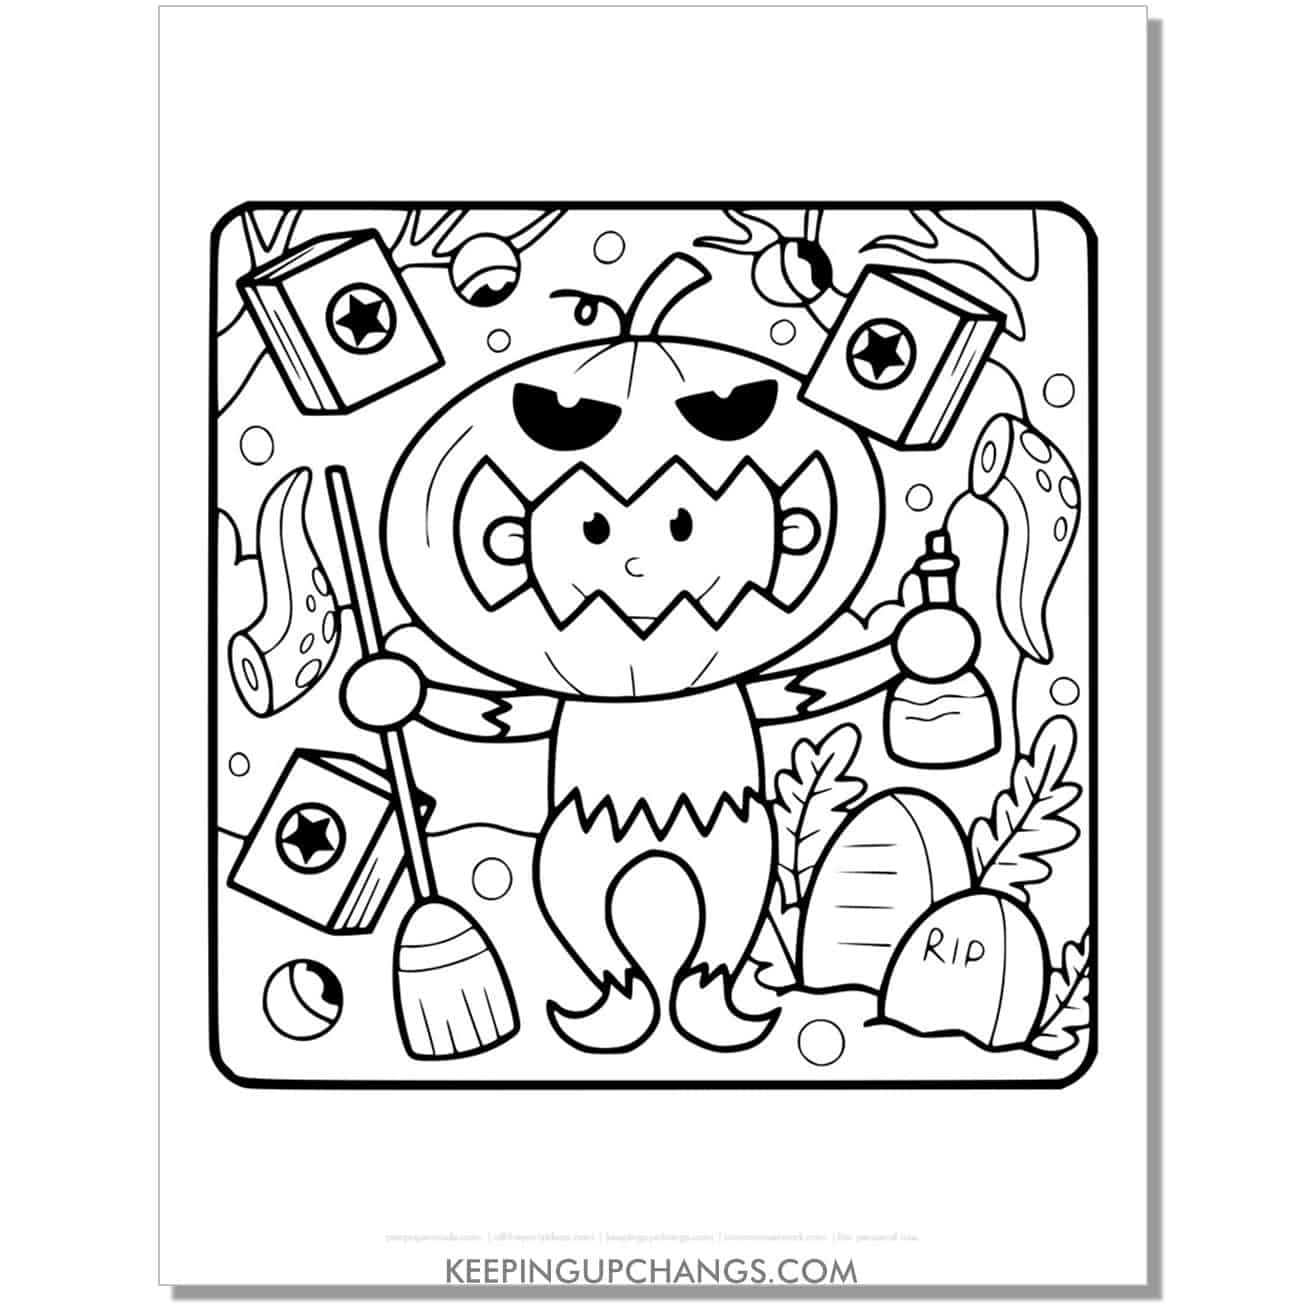 free halloween pumpkin costume for trick or treating coloring page.